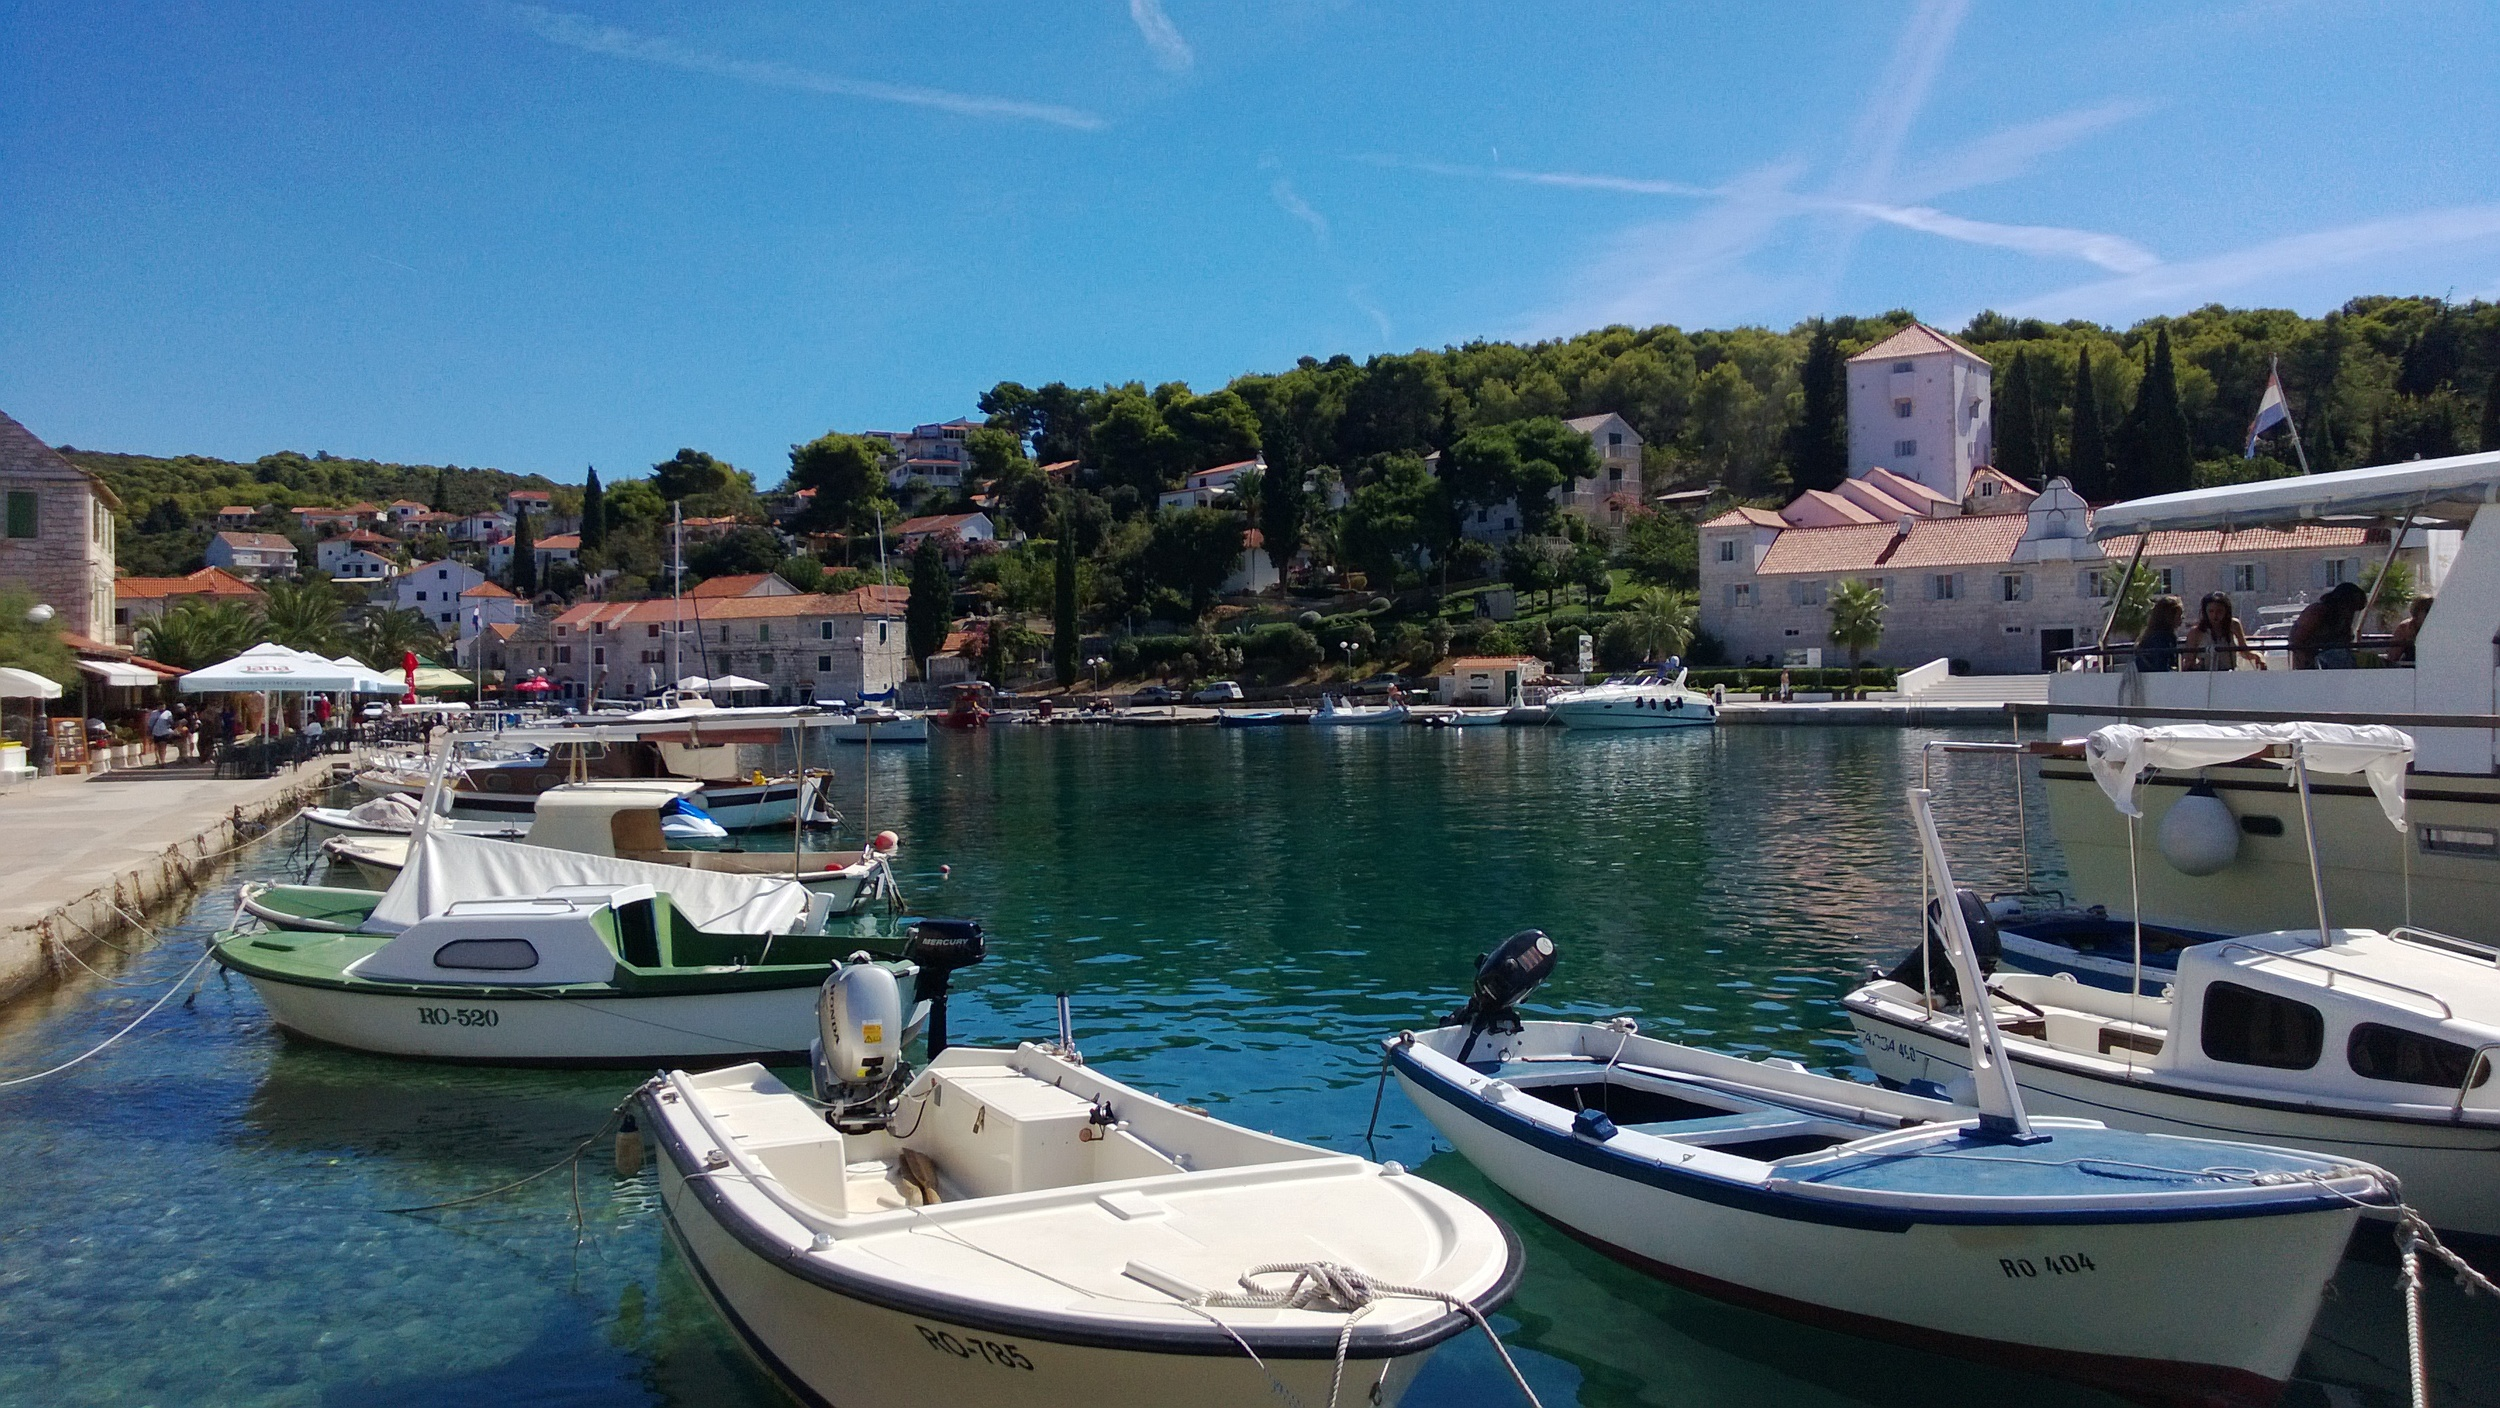 Boats in Croatia